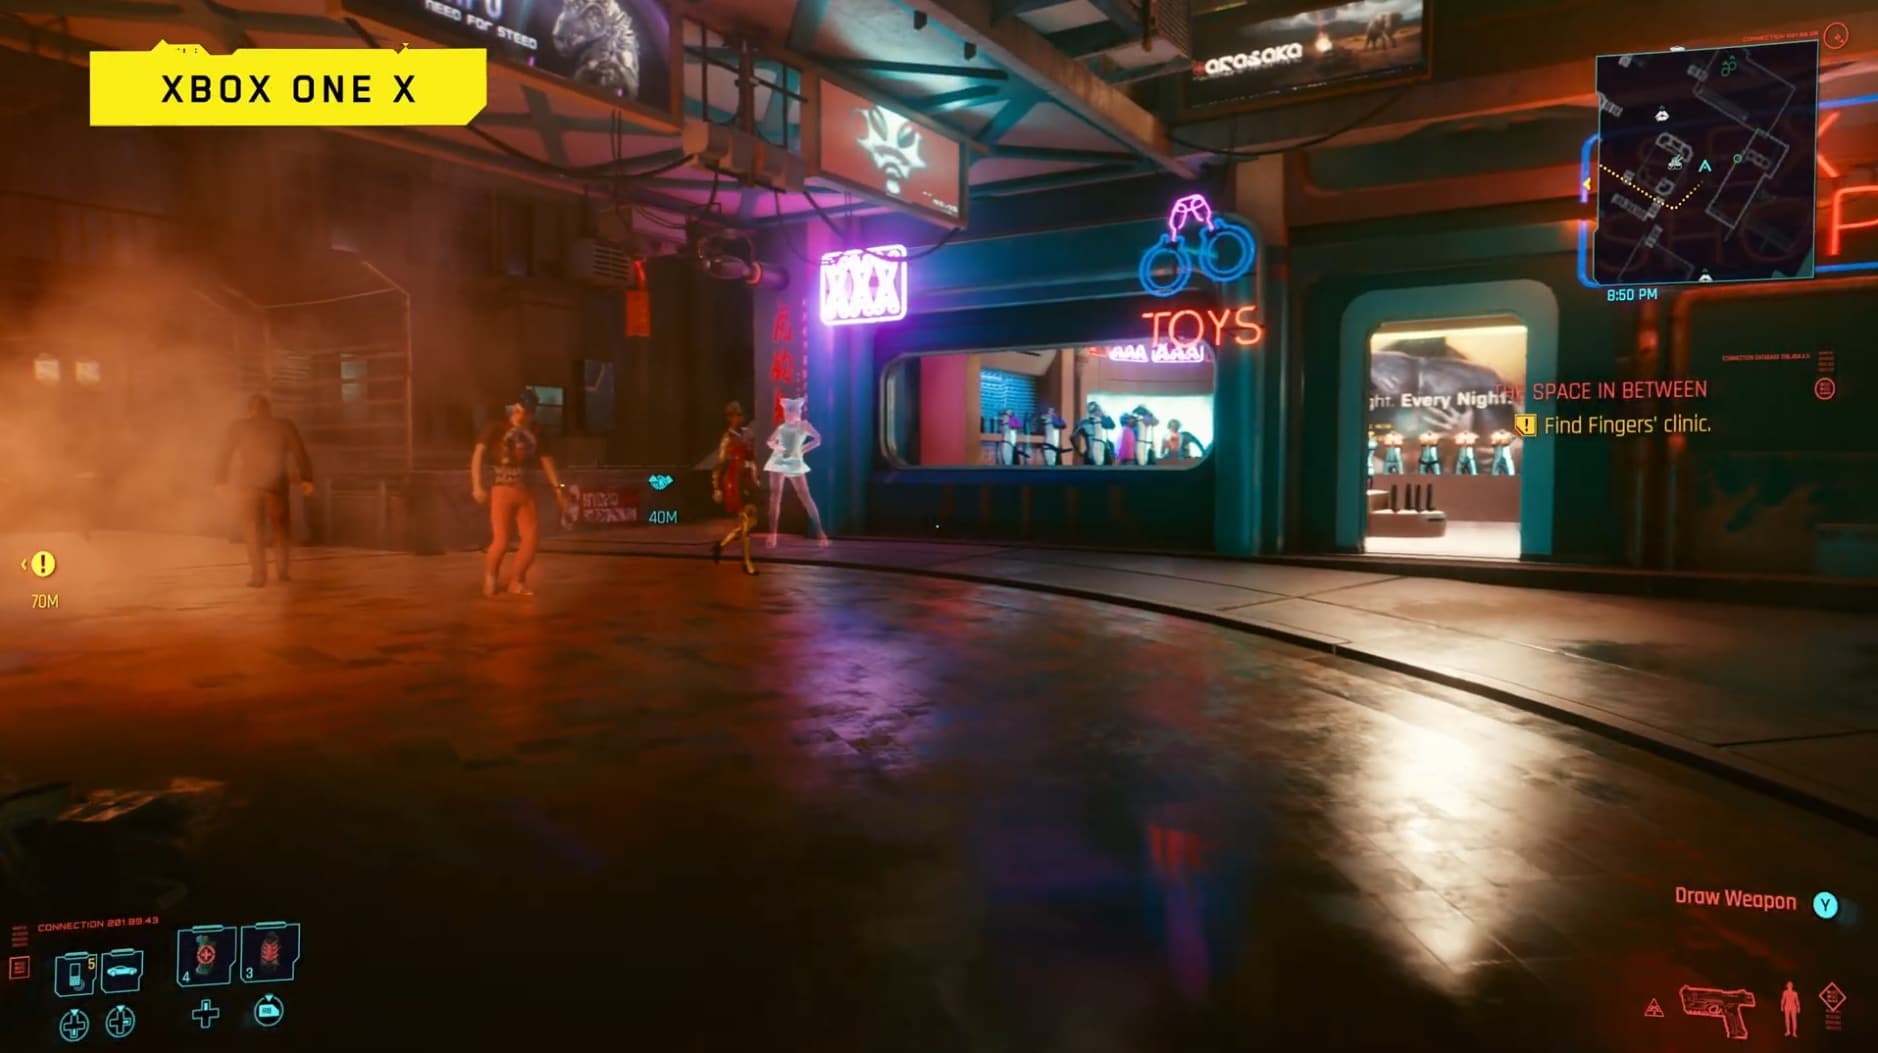 Cyberpunk 2077 on Xbox One X